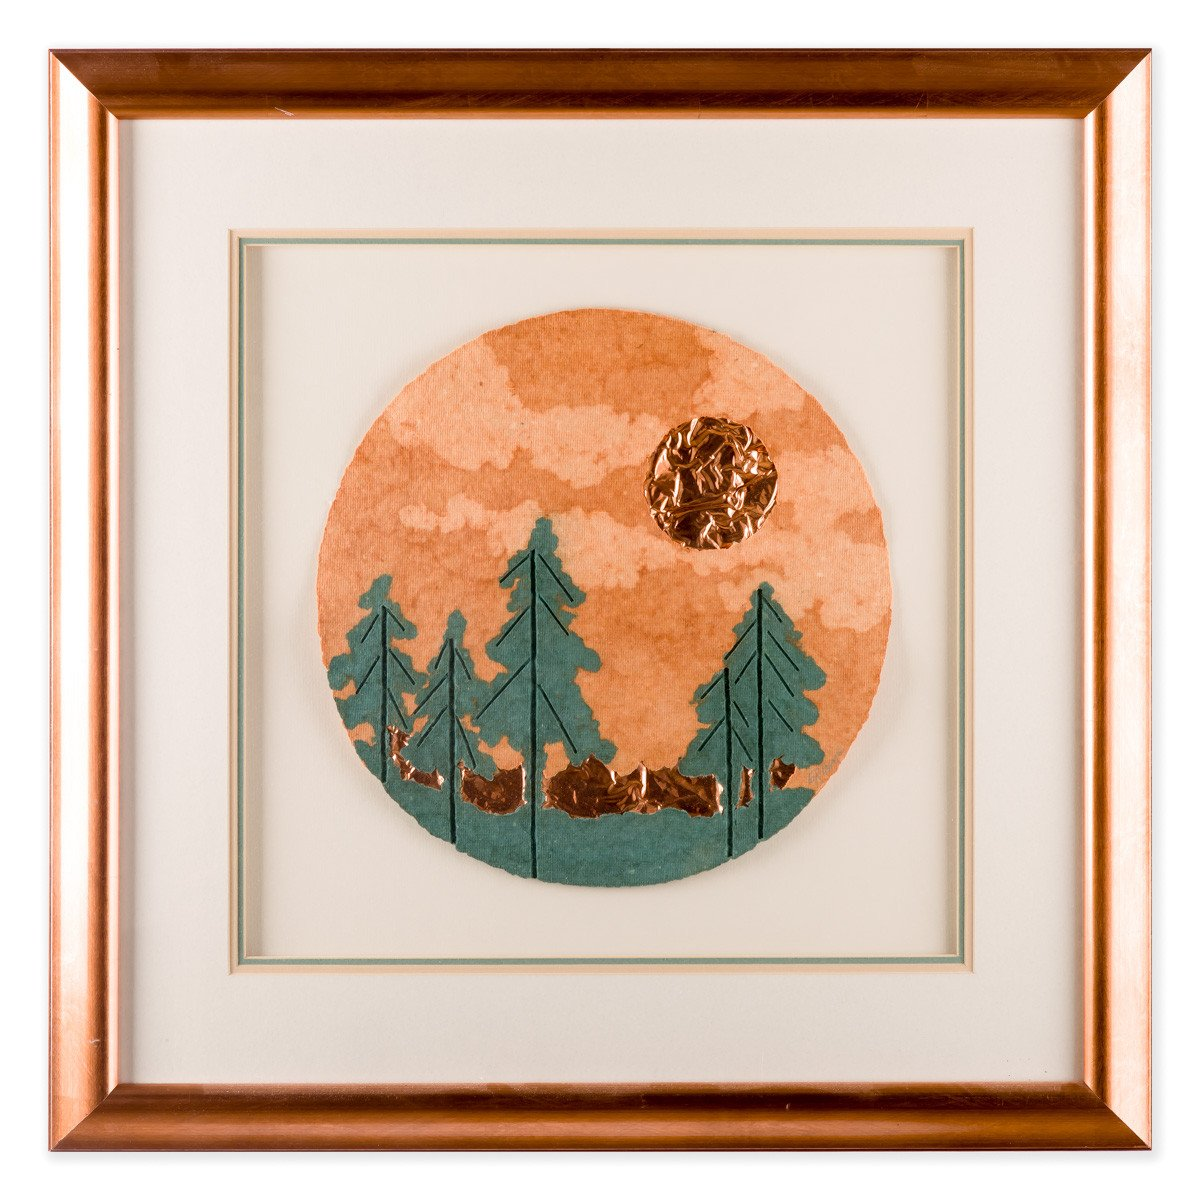 Pine Trees & Moon by Esther Grimm - Framed Art